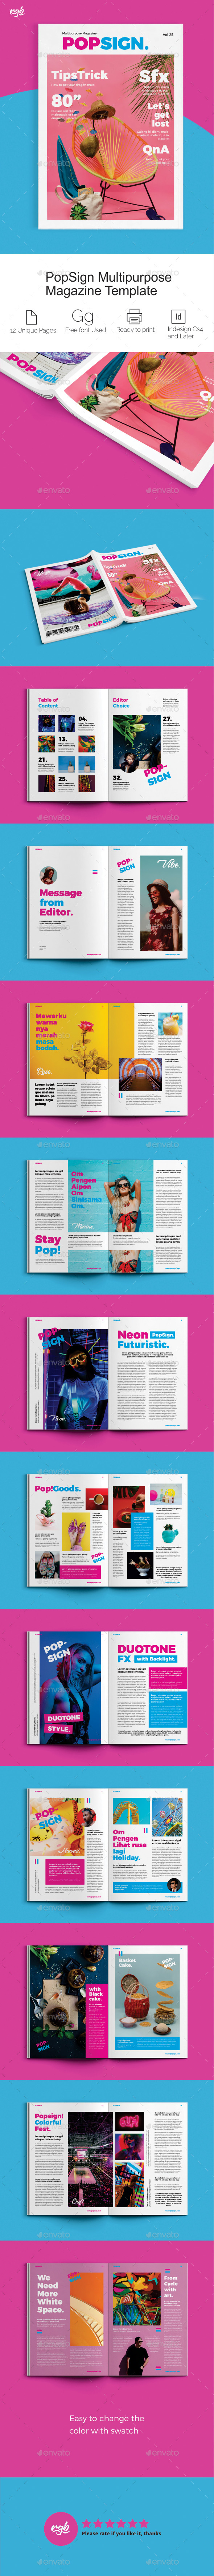 GraphicRiver Popsign Multipurpose Magazine 20953254